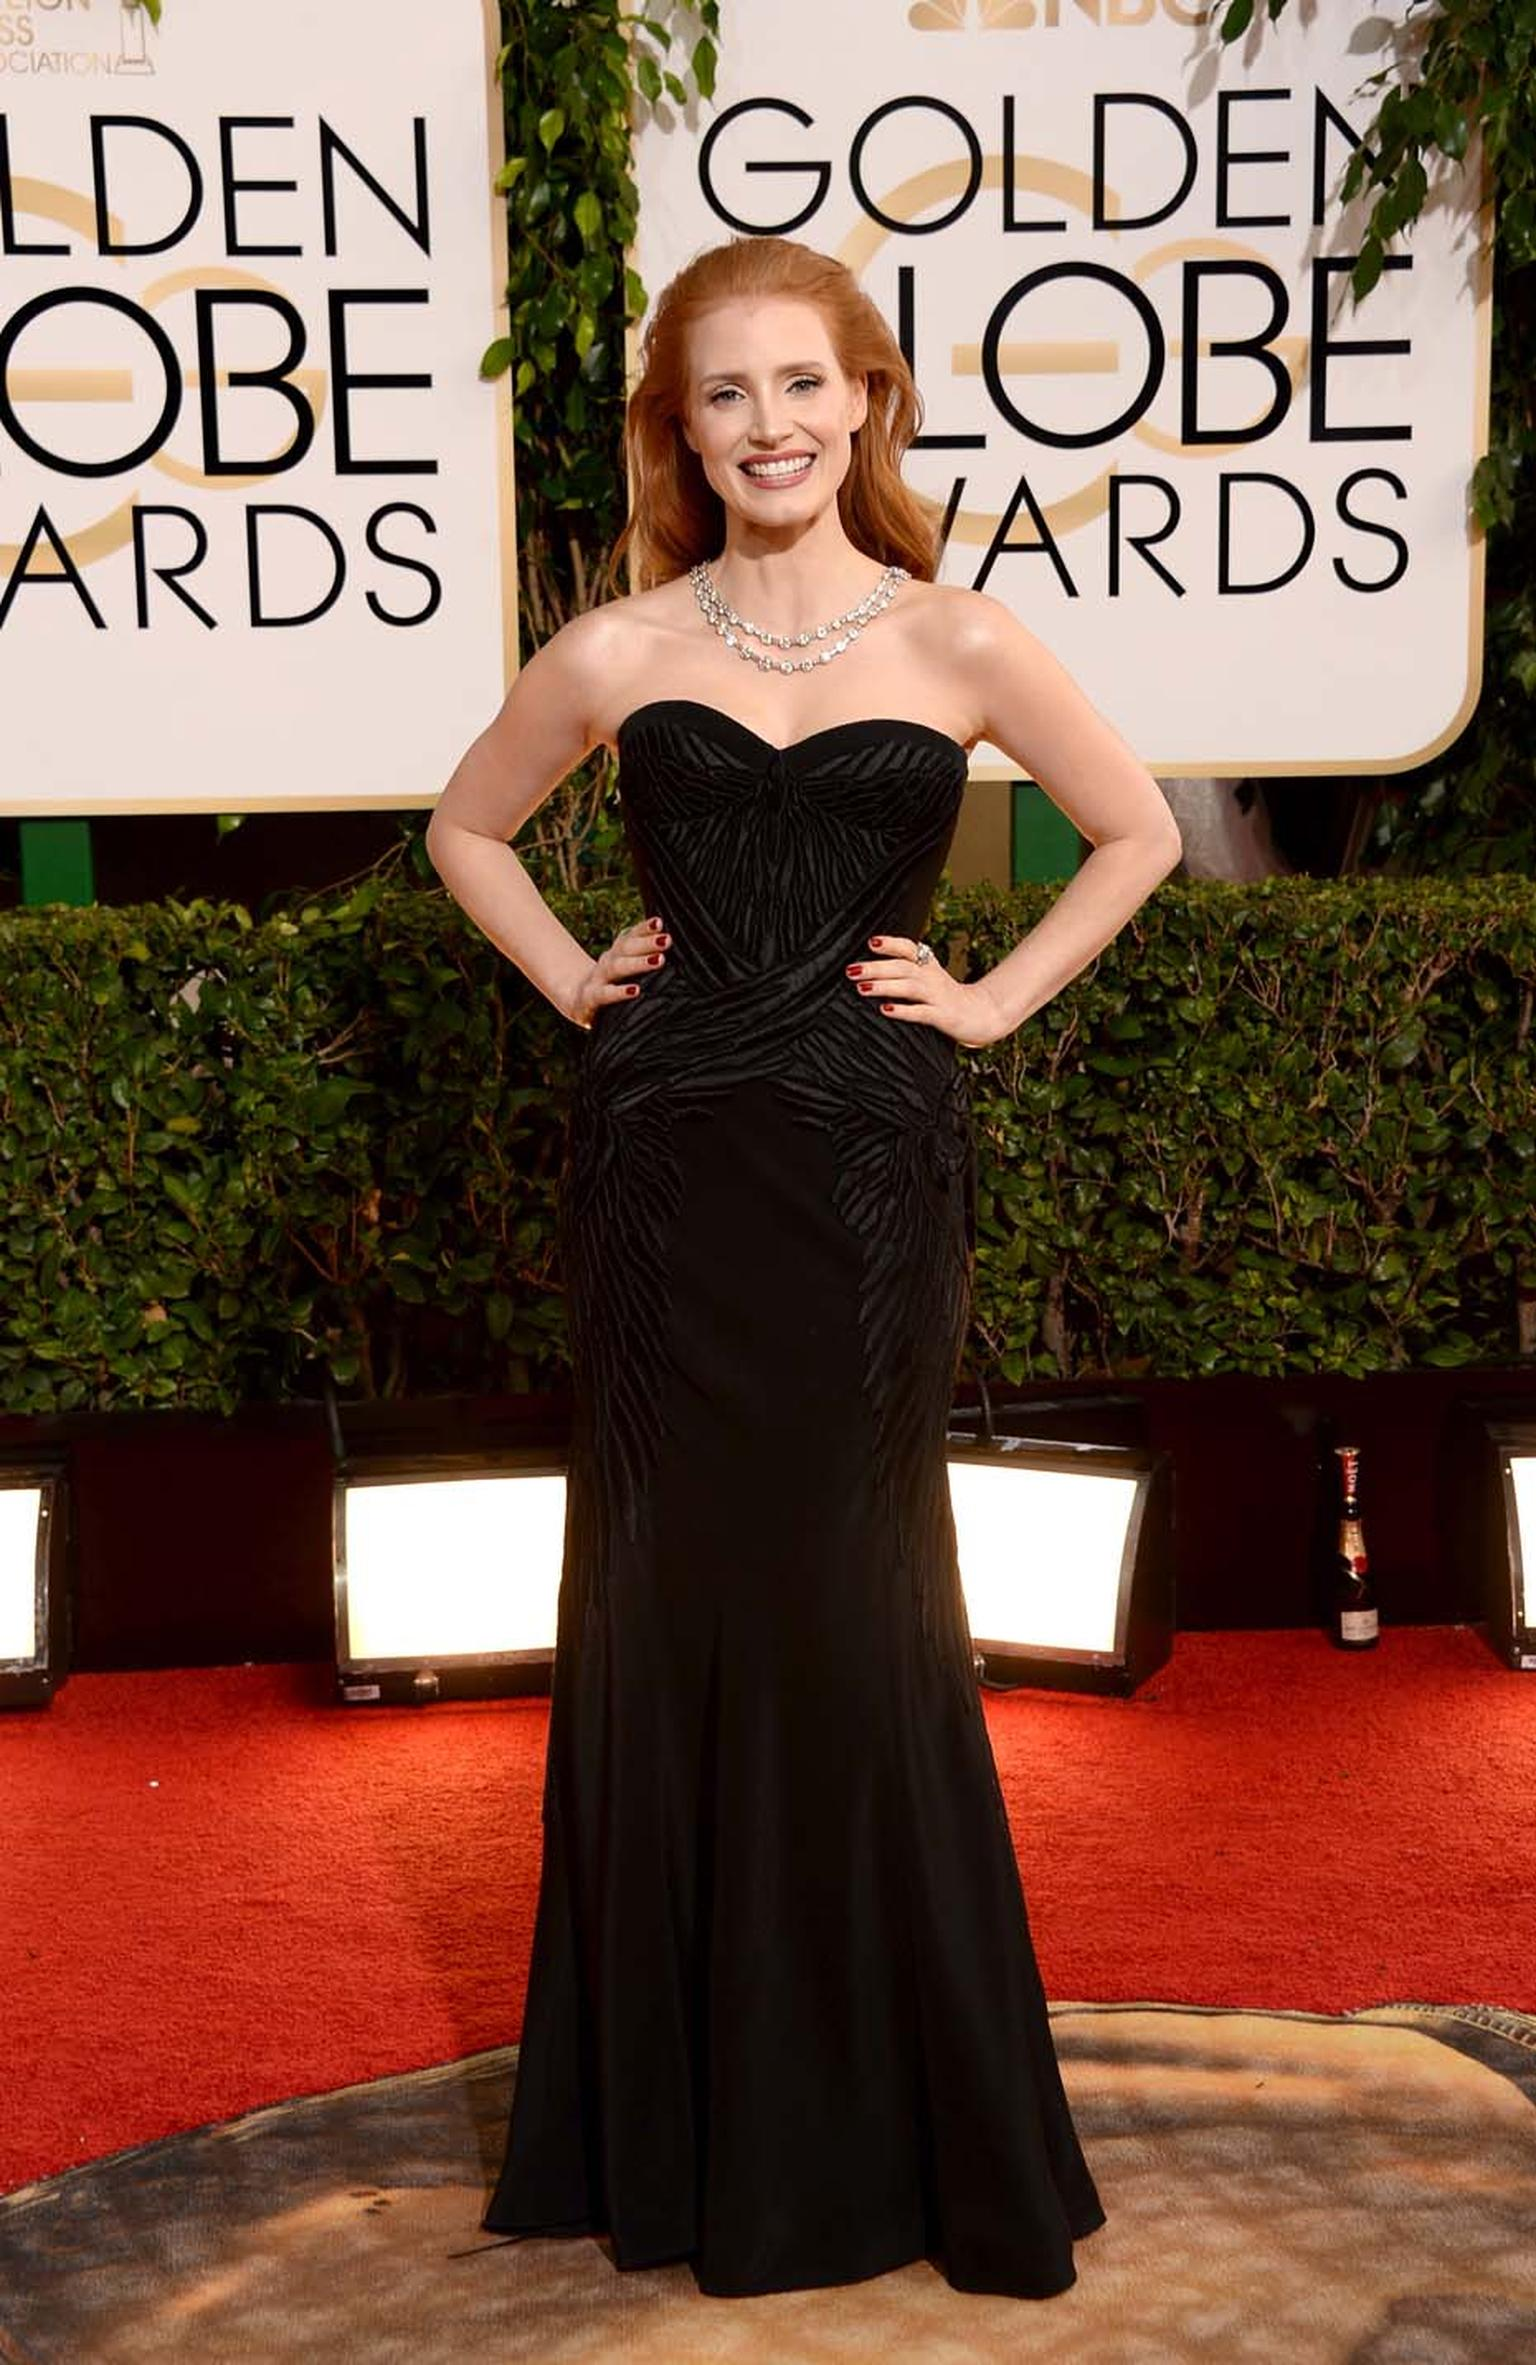 Jessica Chastain provided some old-school glamour at the 2014 Golden Globes in vintage Bulgari jewels